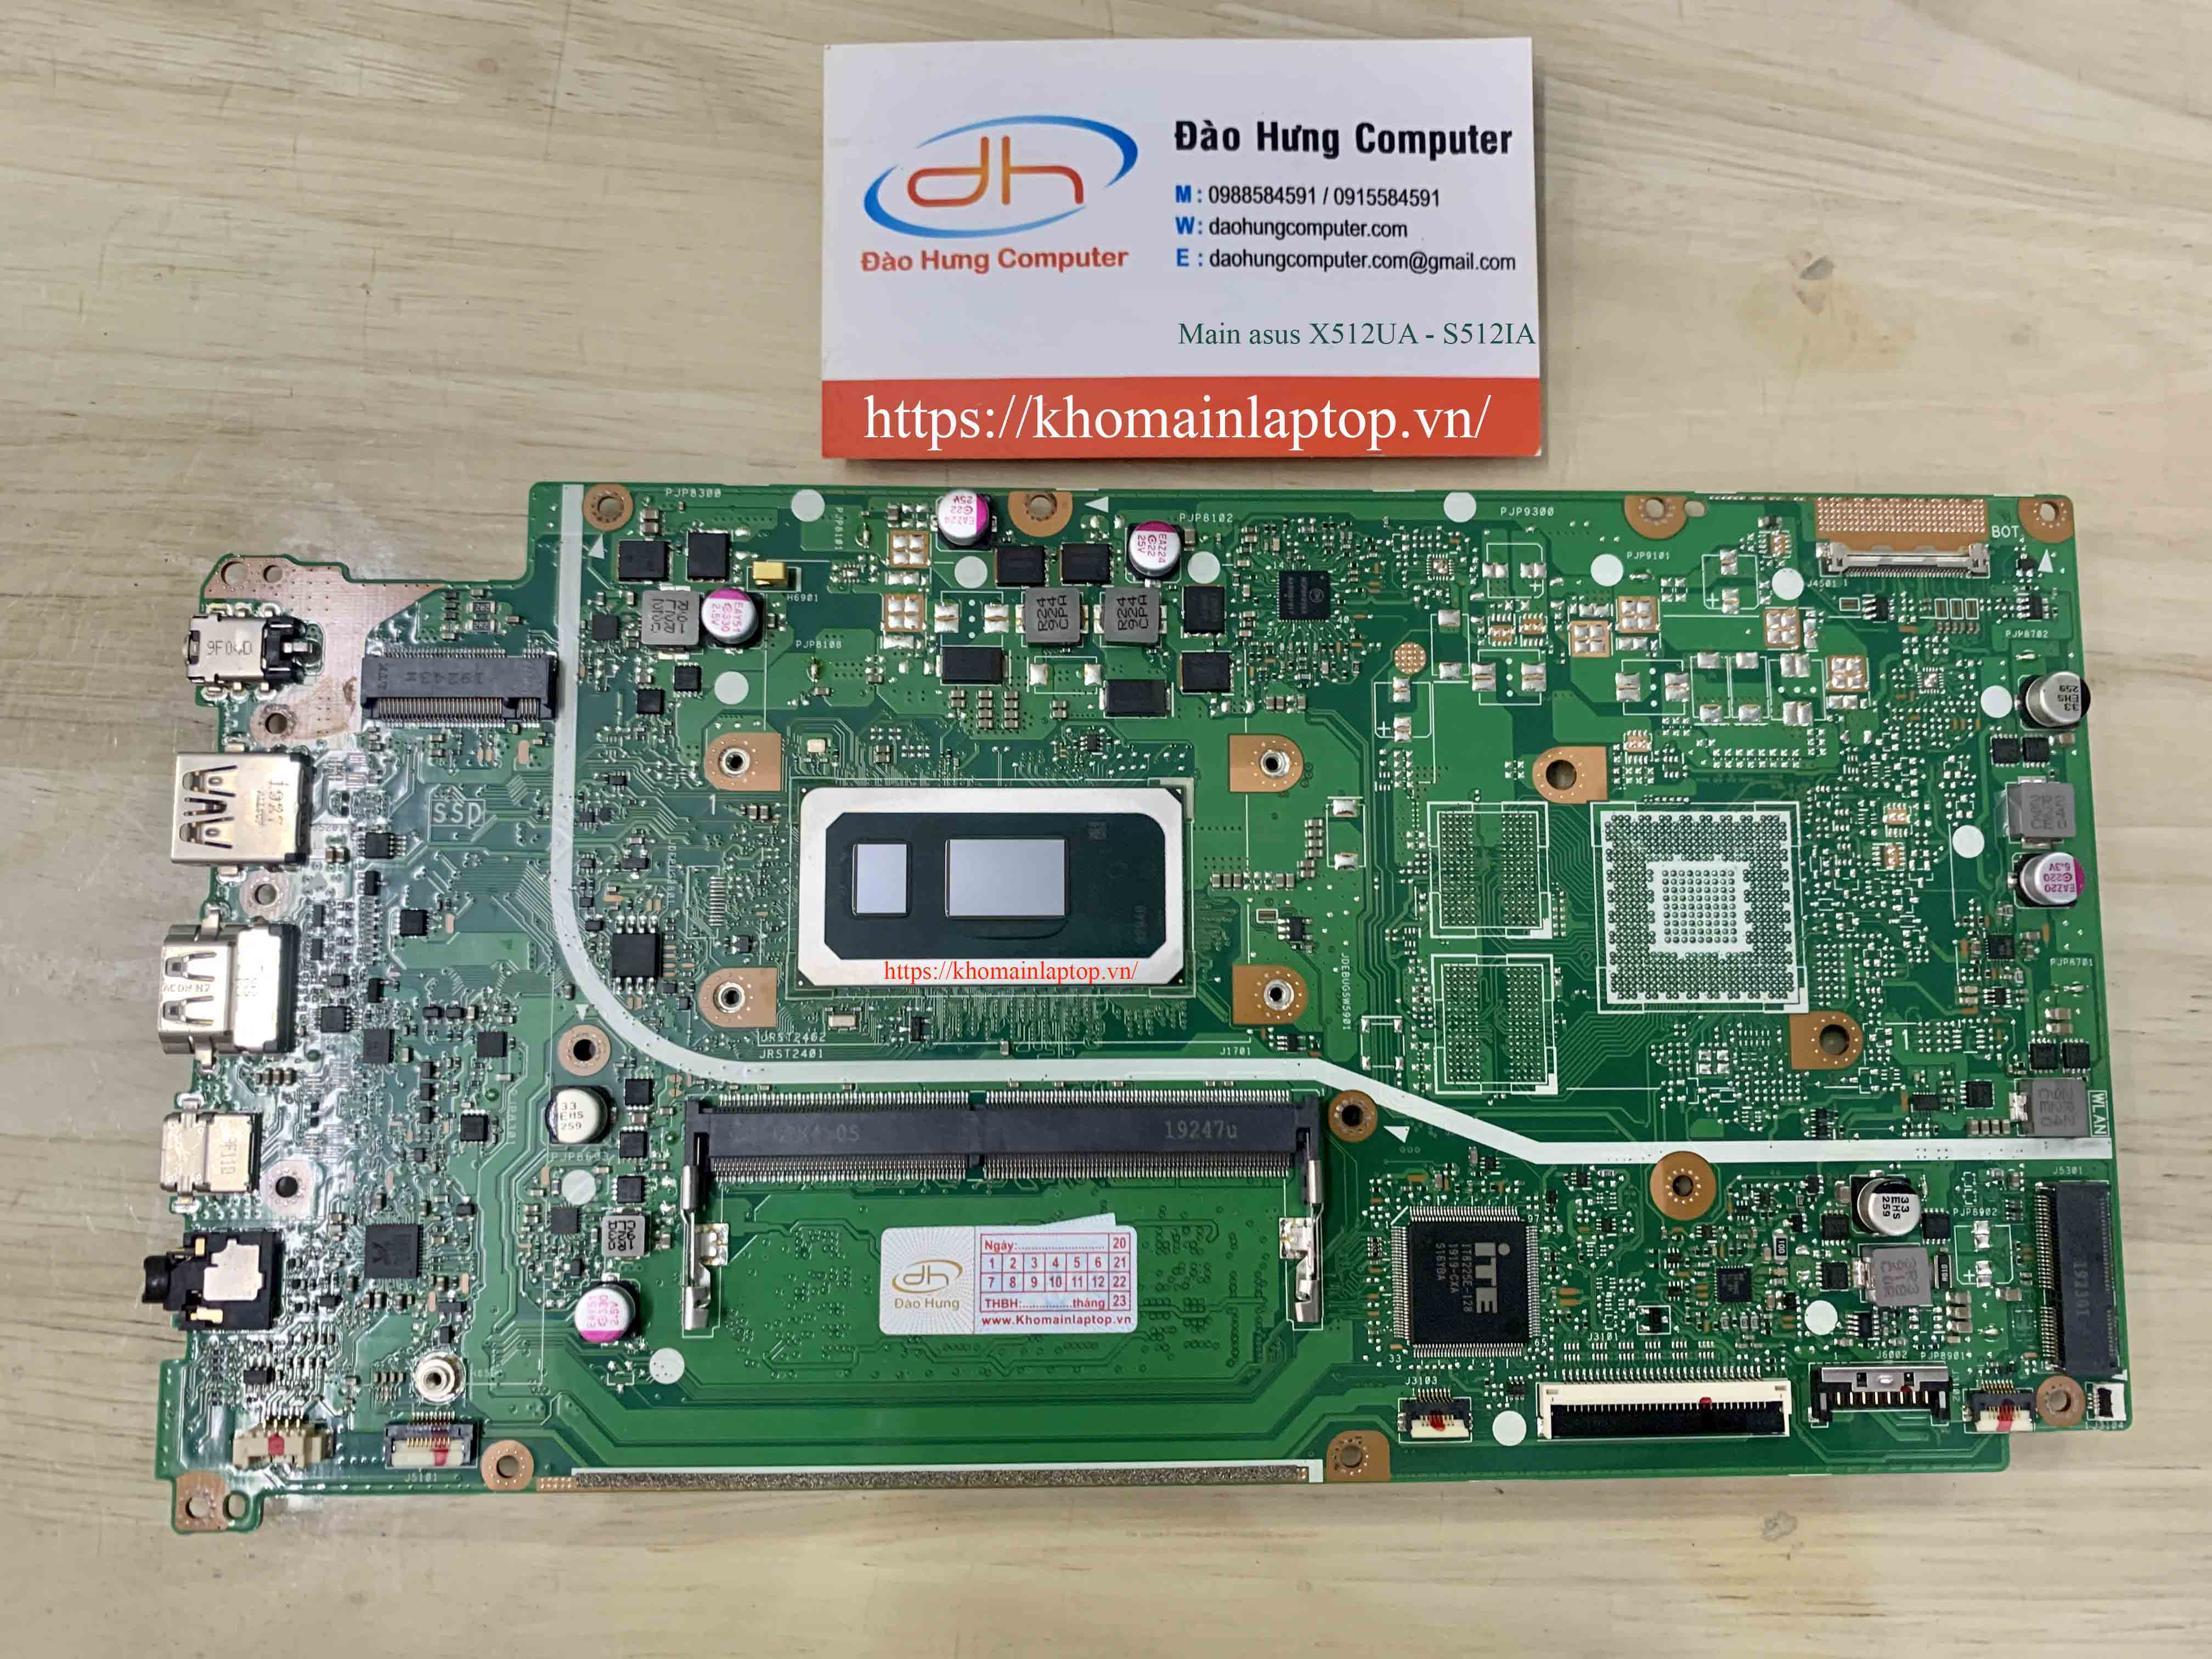 mainboard-asus-s512ua-core-i3-new-keng-chinh-hang